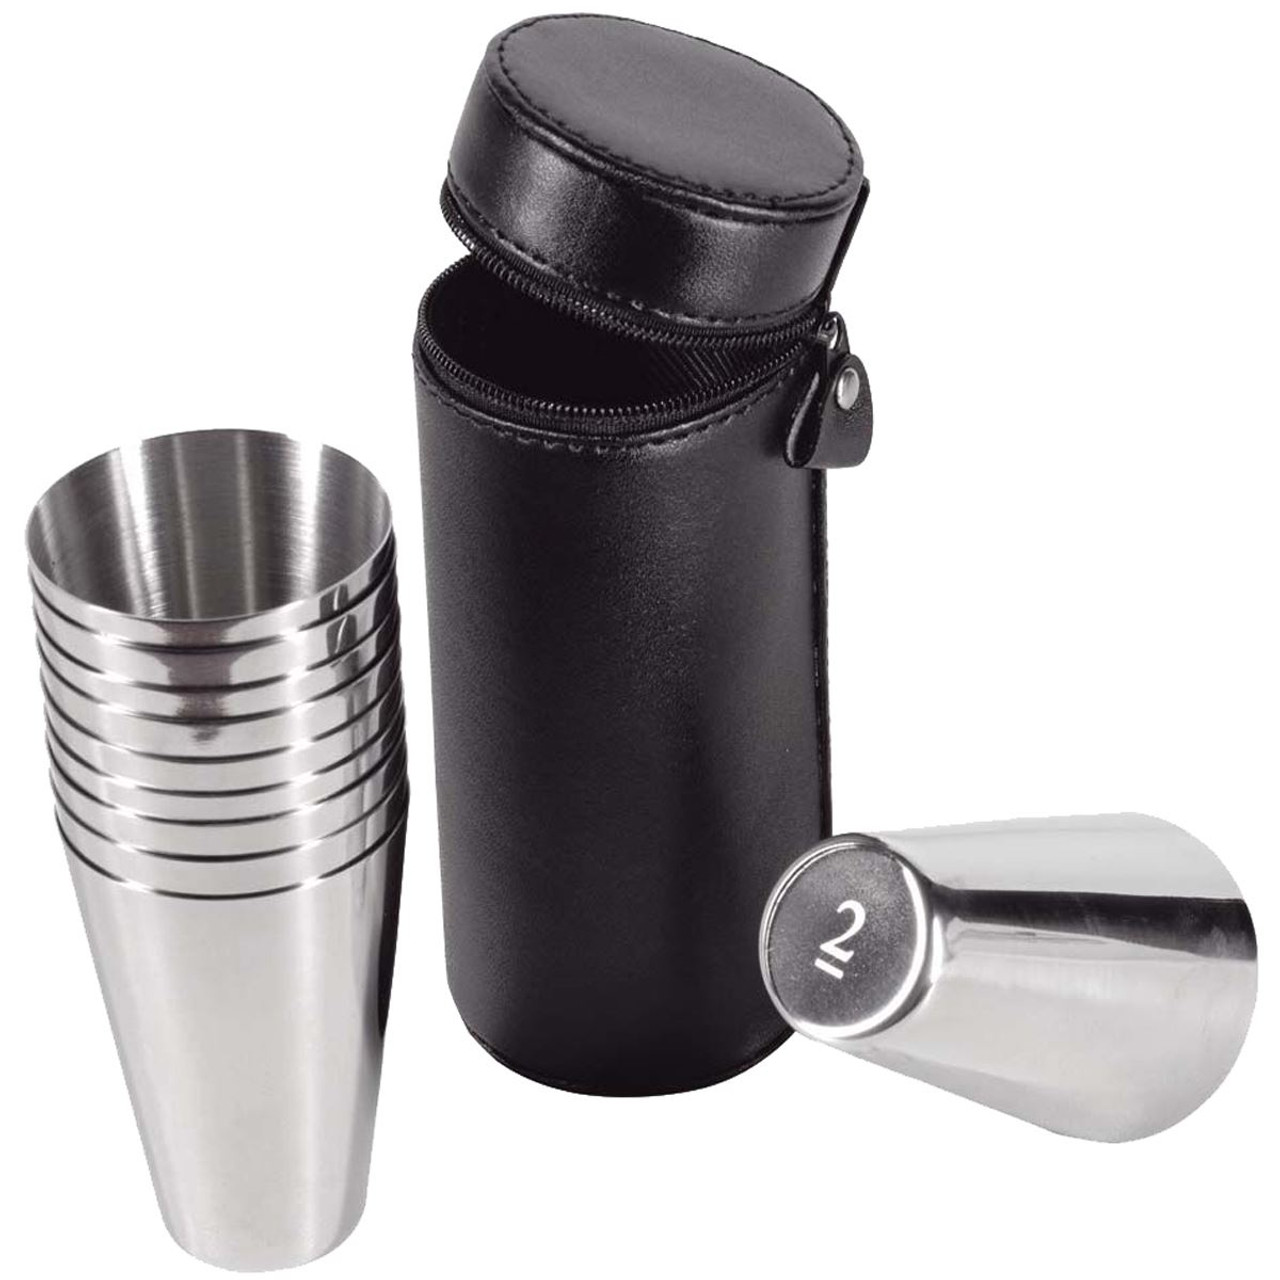 Stainless Steel Bisley 2oz Numbered Cups